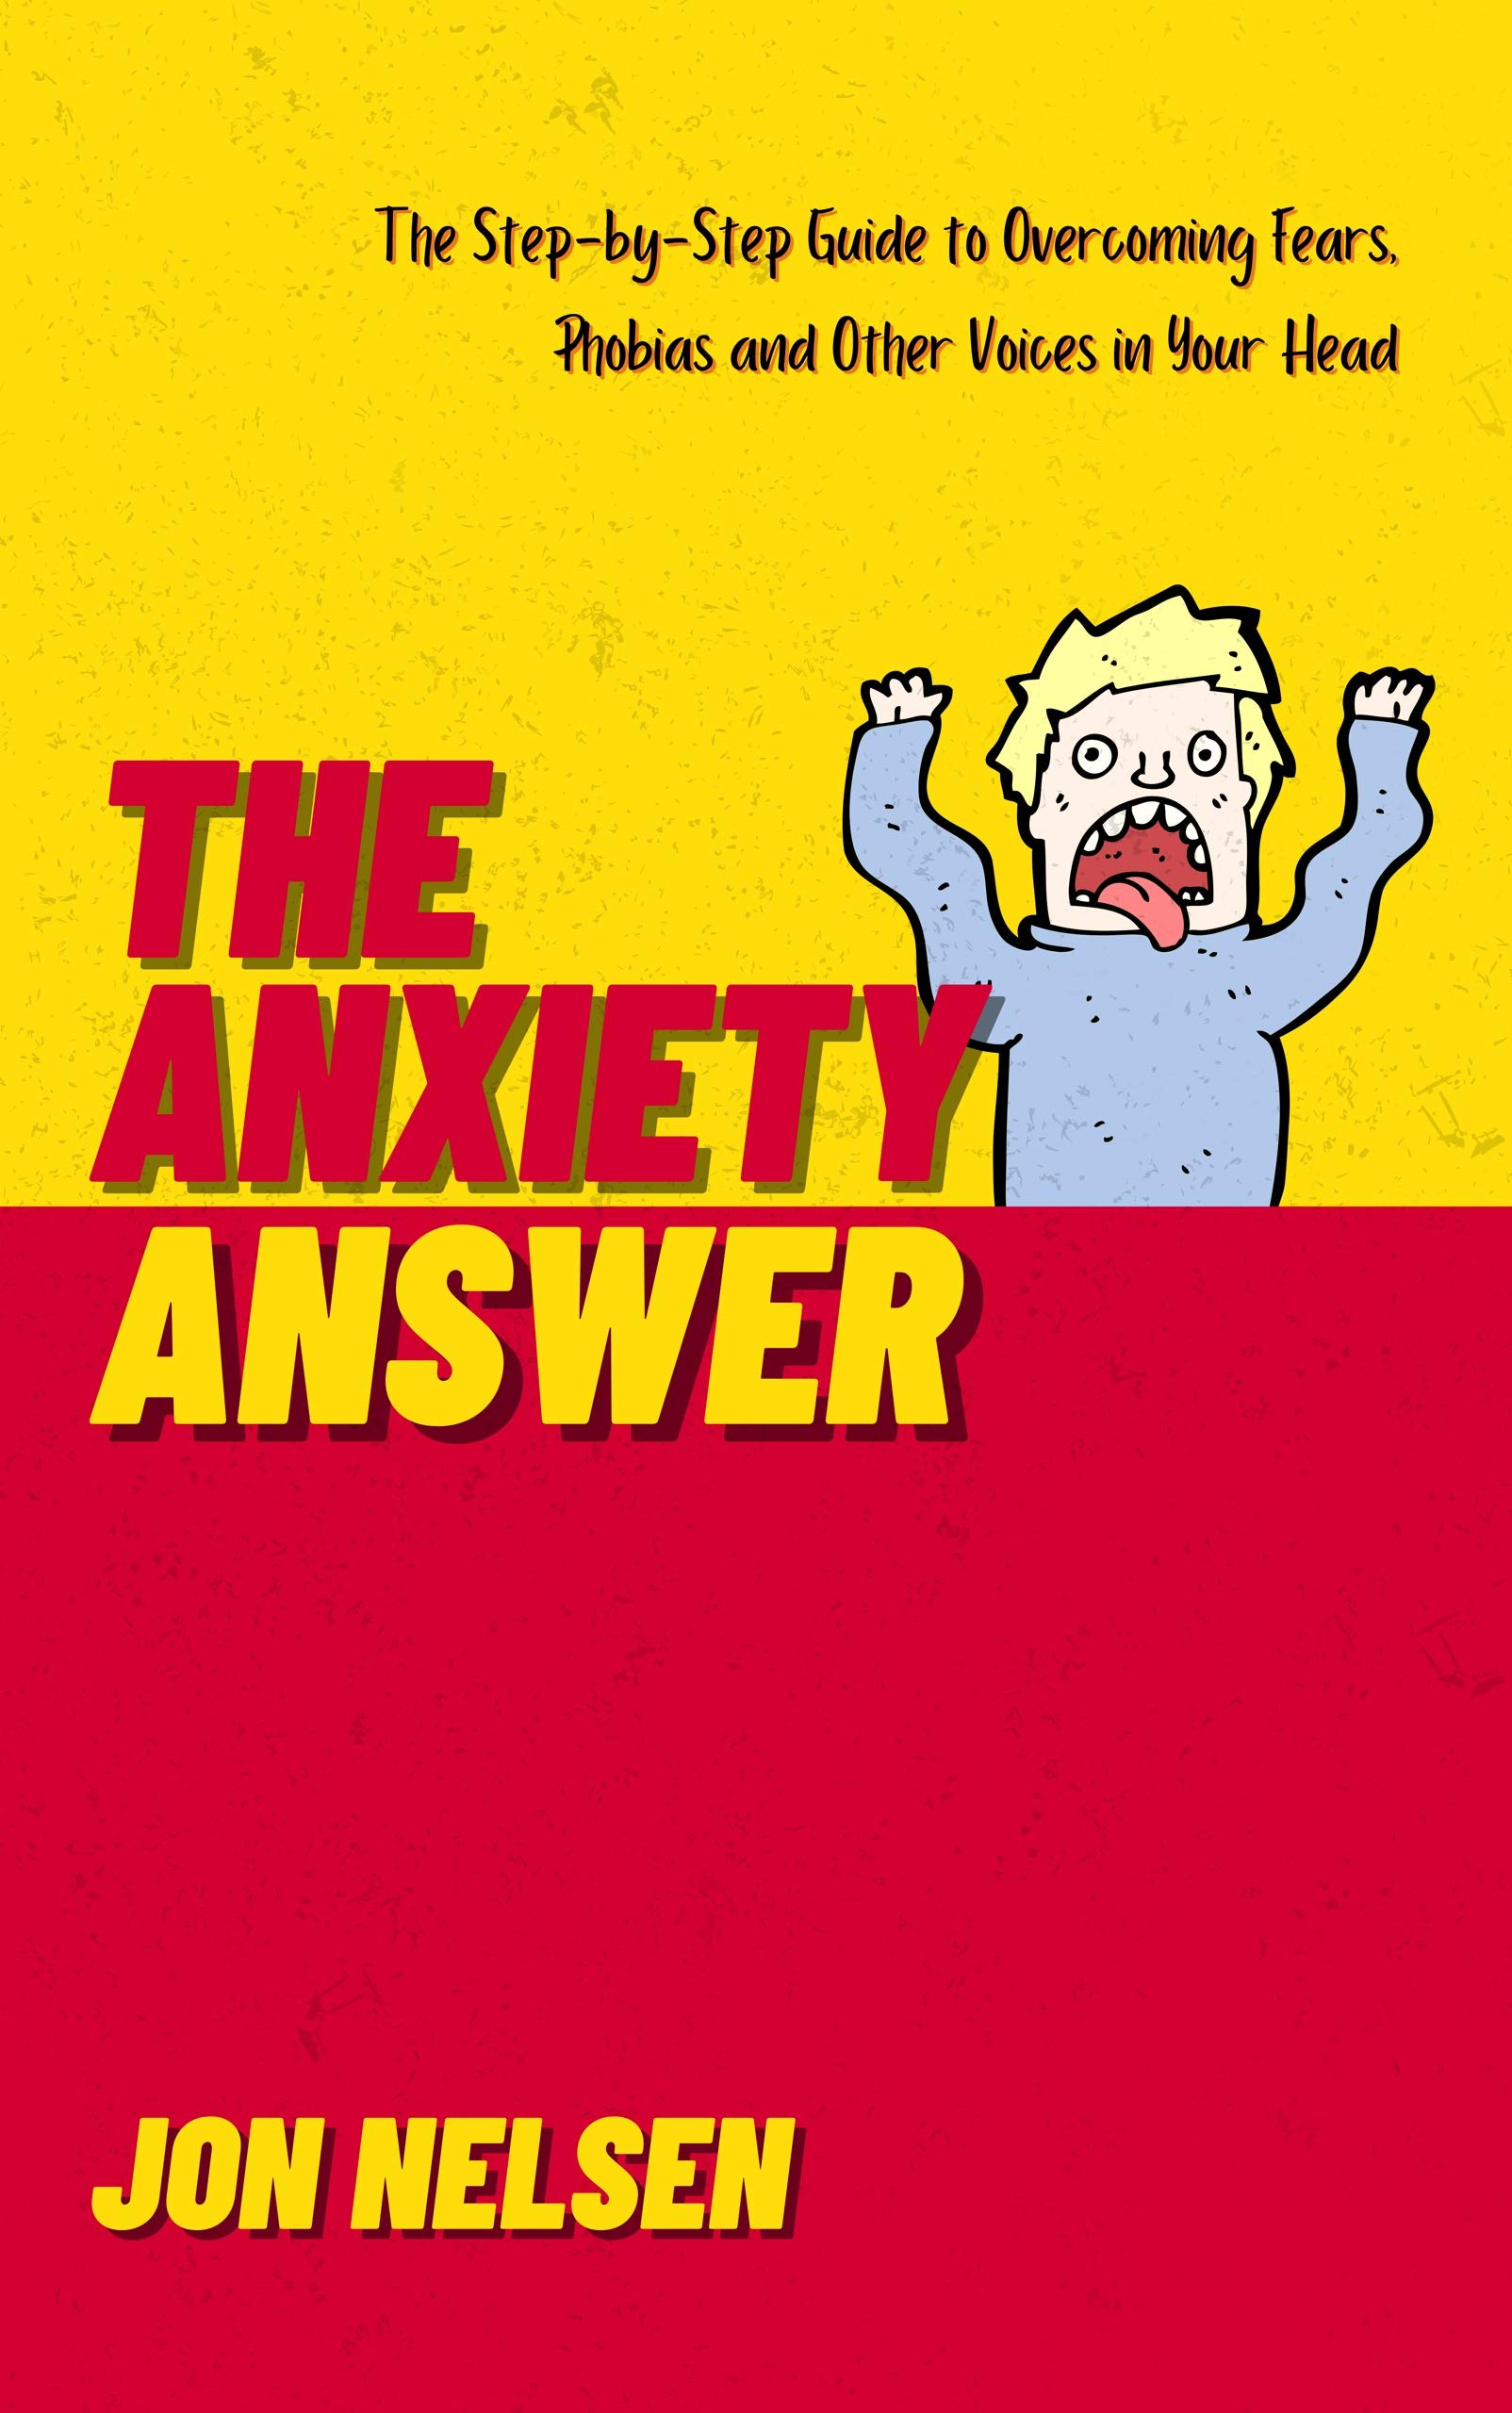 The Anxiety Answer: The Step-by-Step Guide to Overcoming Fears, Phobias, and Other Voices in Your Head